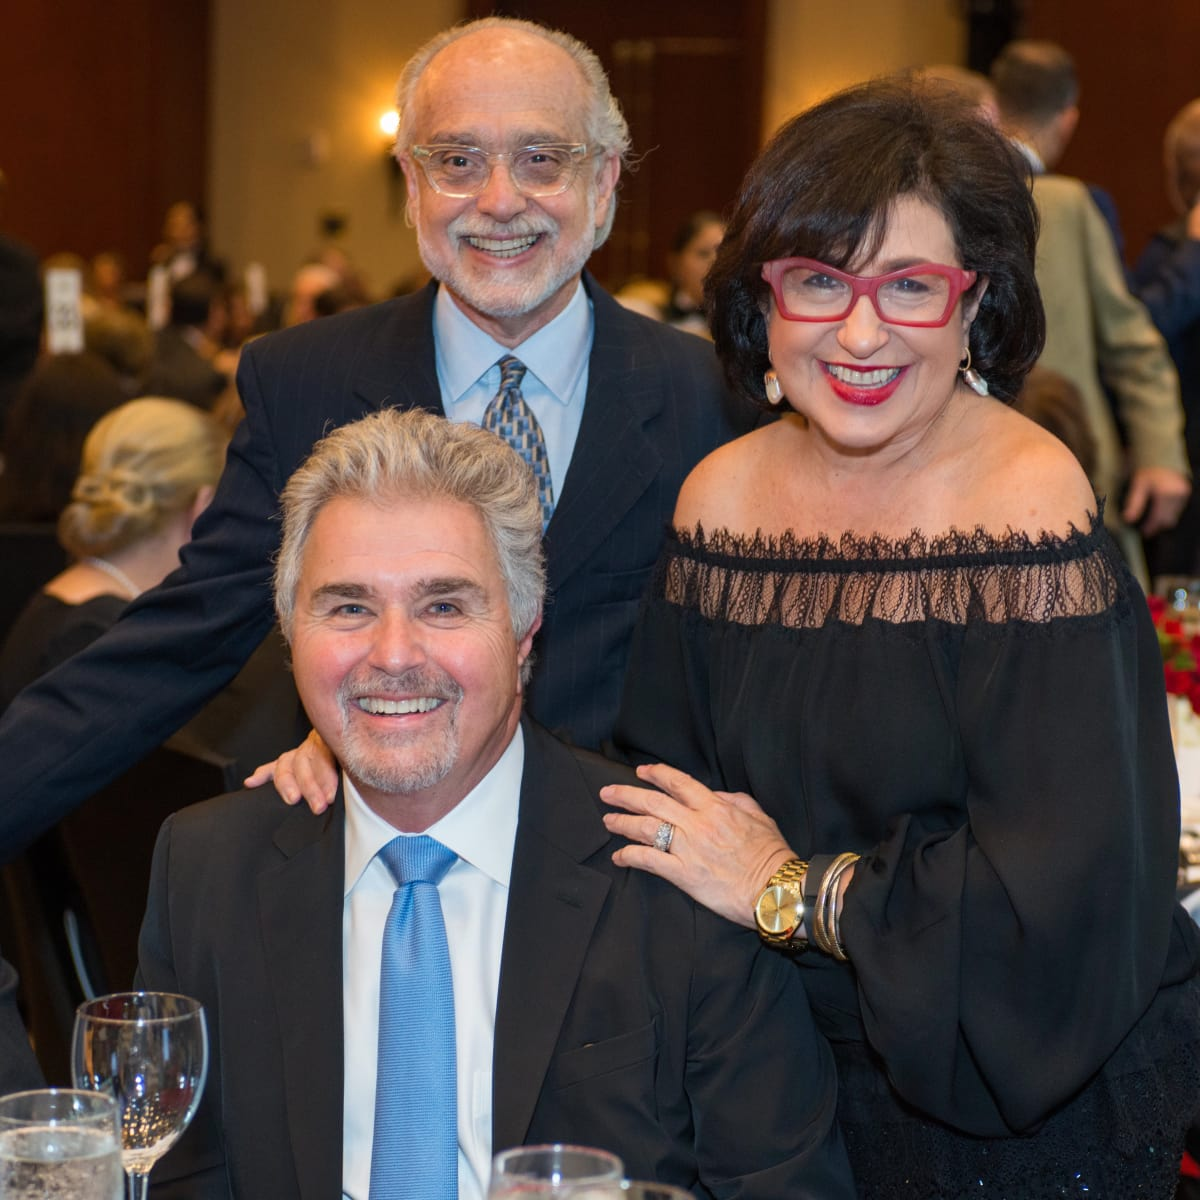 Crime Stoppers Gala Alan Pactor, Roz Pactor, Steve Tyrell